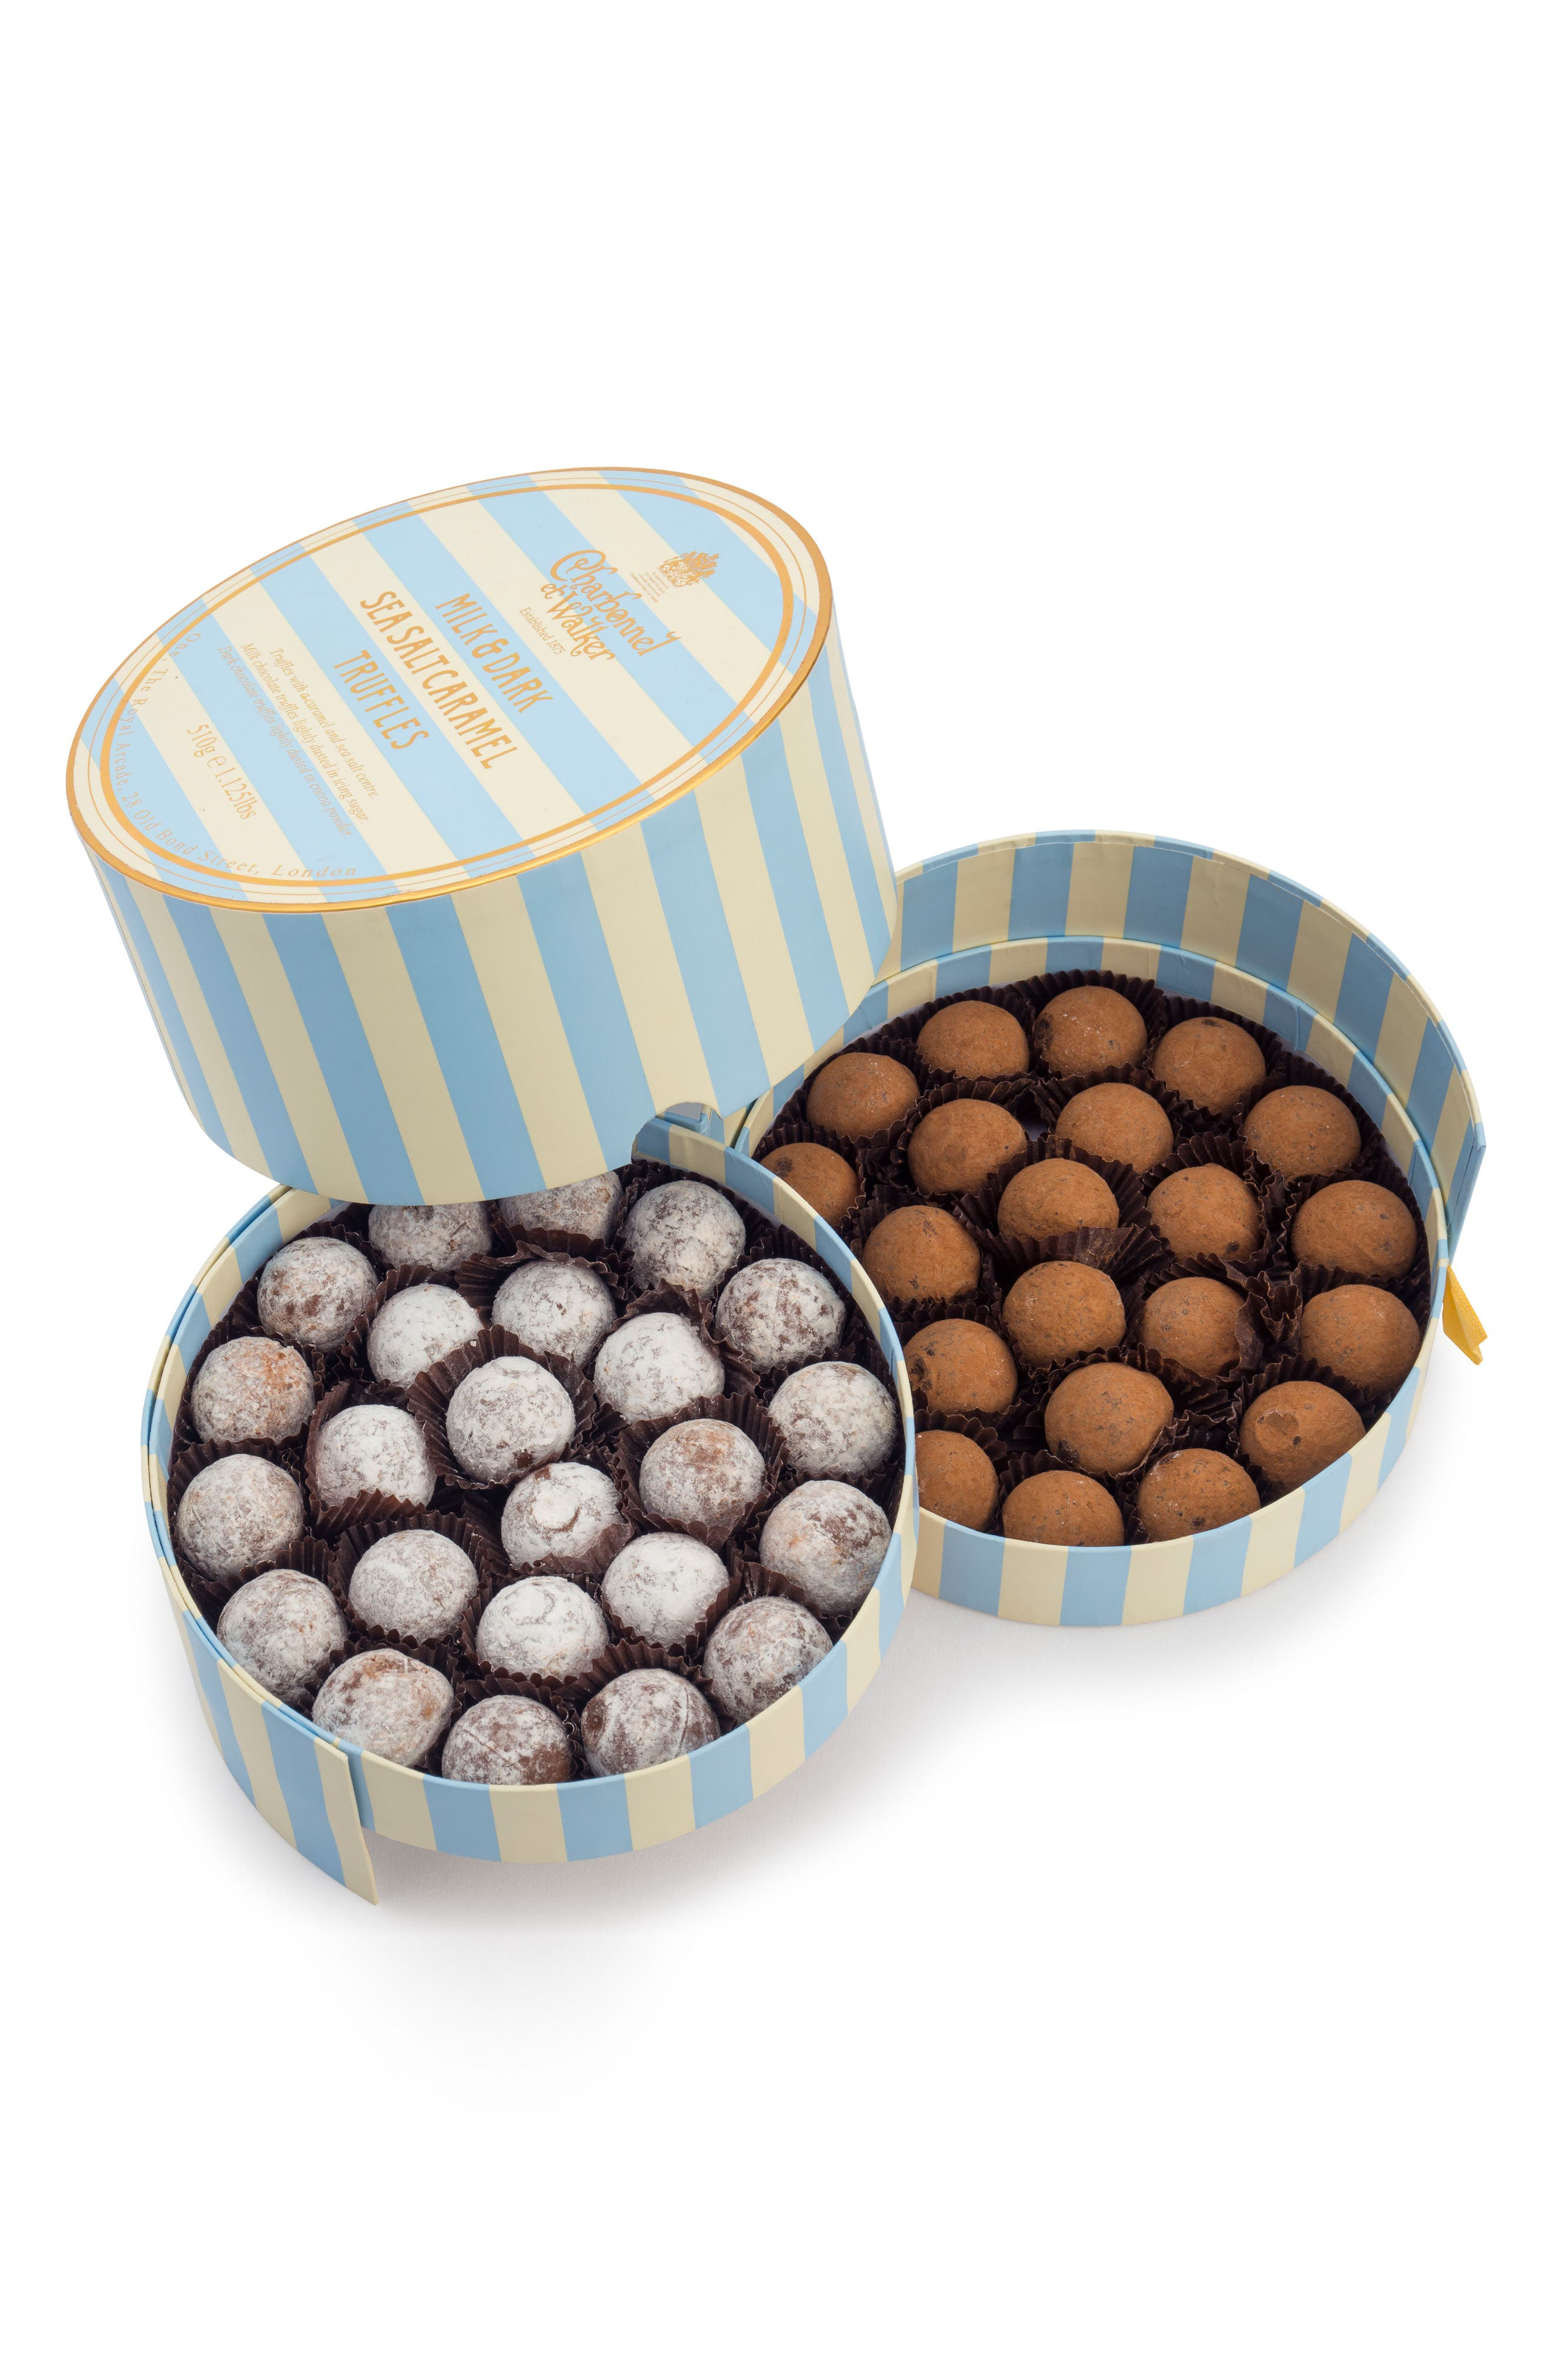 CHARBONNEL ET WALKER, Flavored Chocolate Truffles in Gift Box, Main thumbnail 1, color, 400